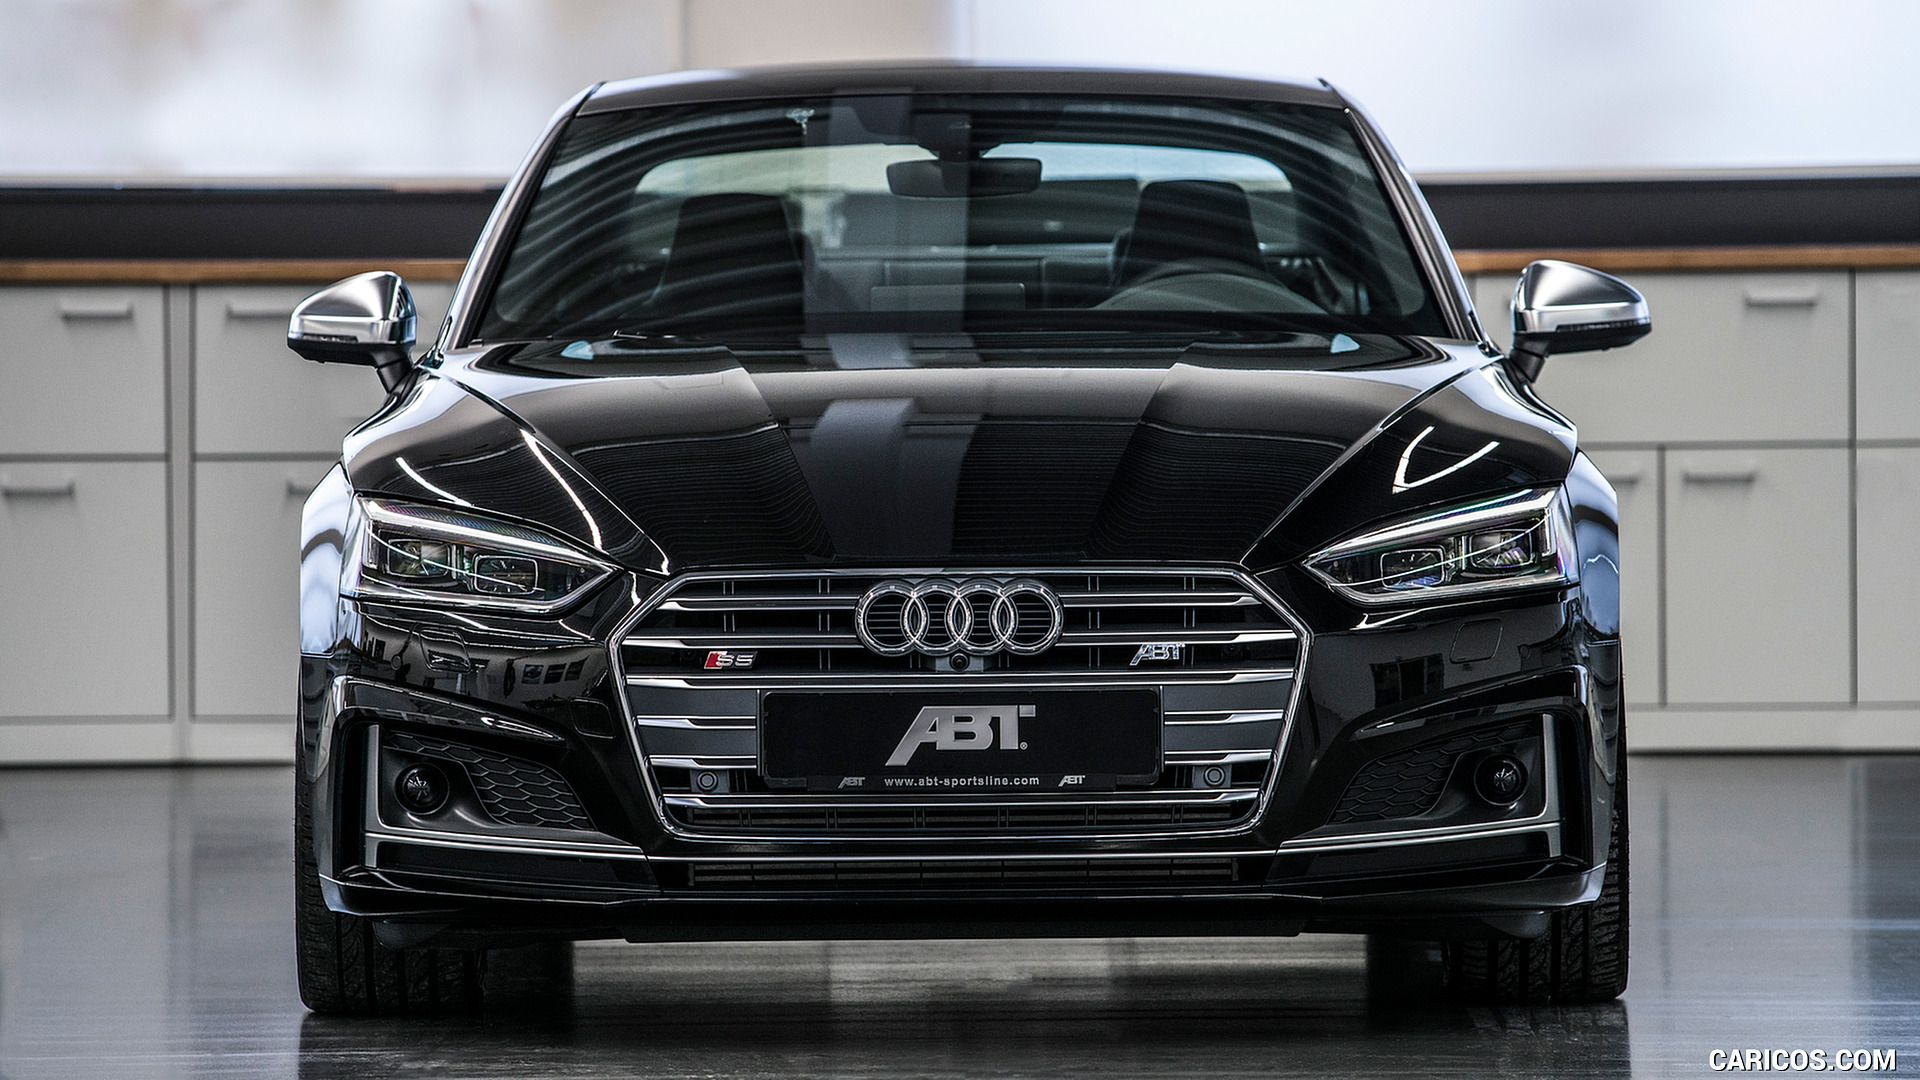 Audi s second gen family has been around for a few months now so naturally abt sportsline